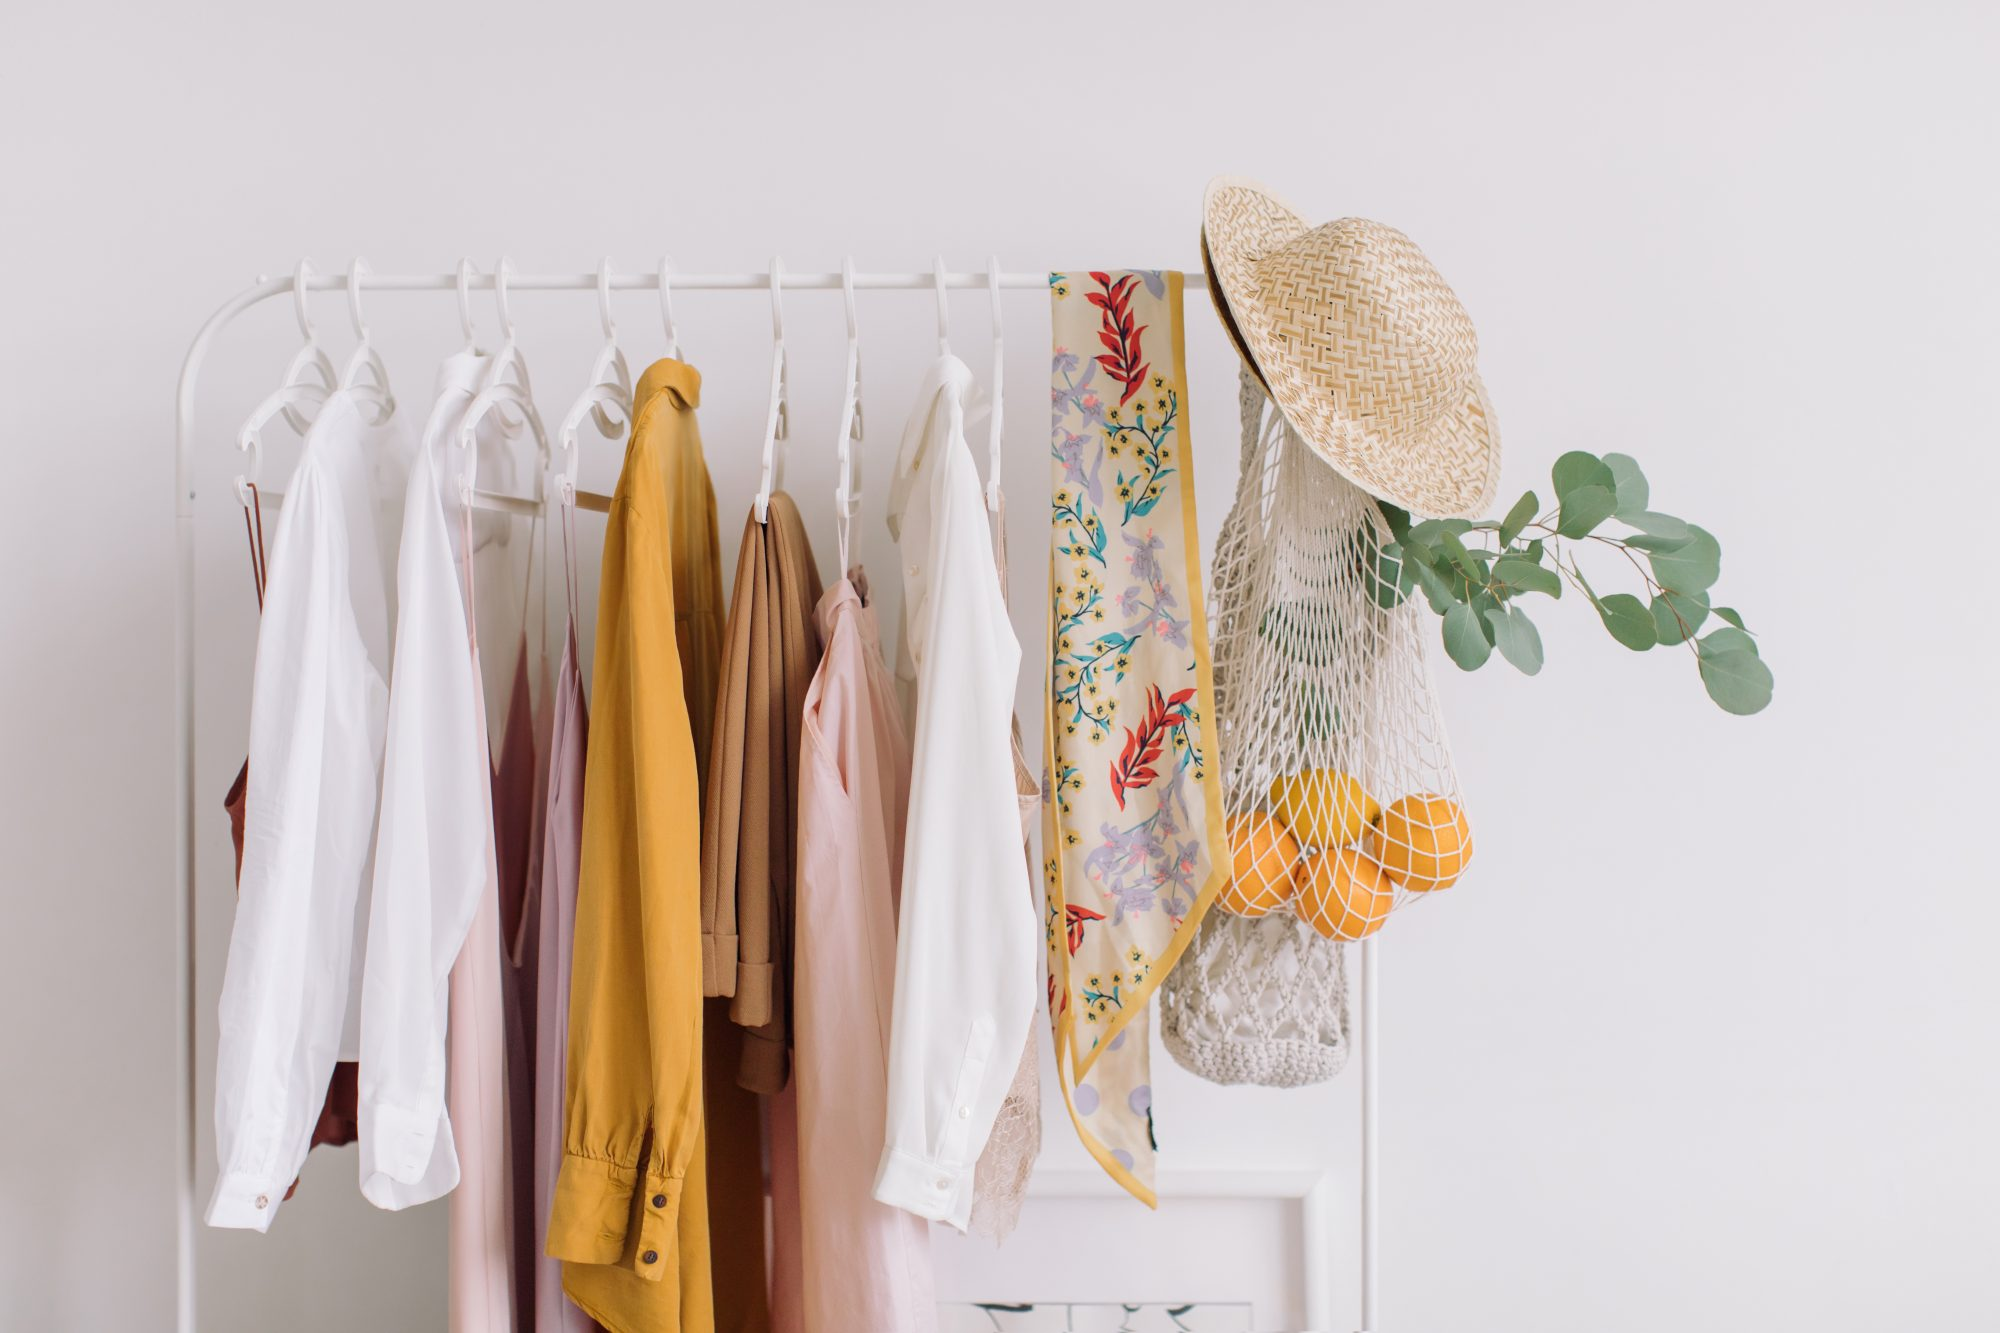 sustainable clothing brands hanging in a closet